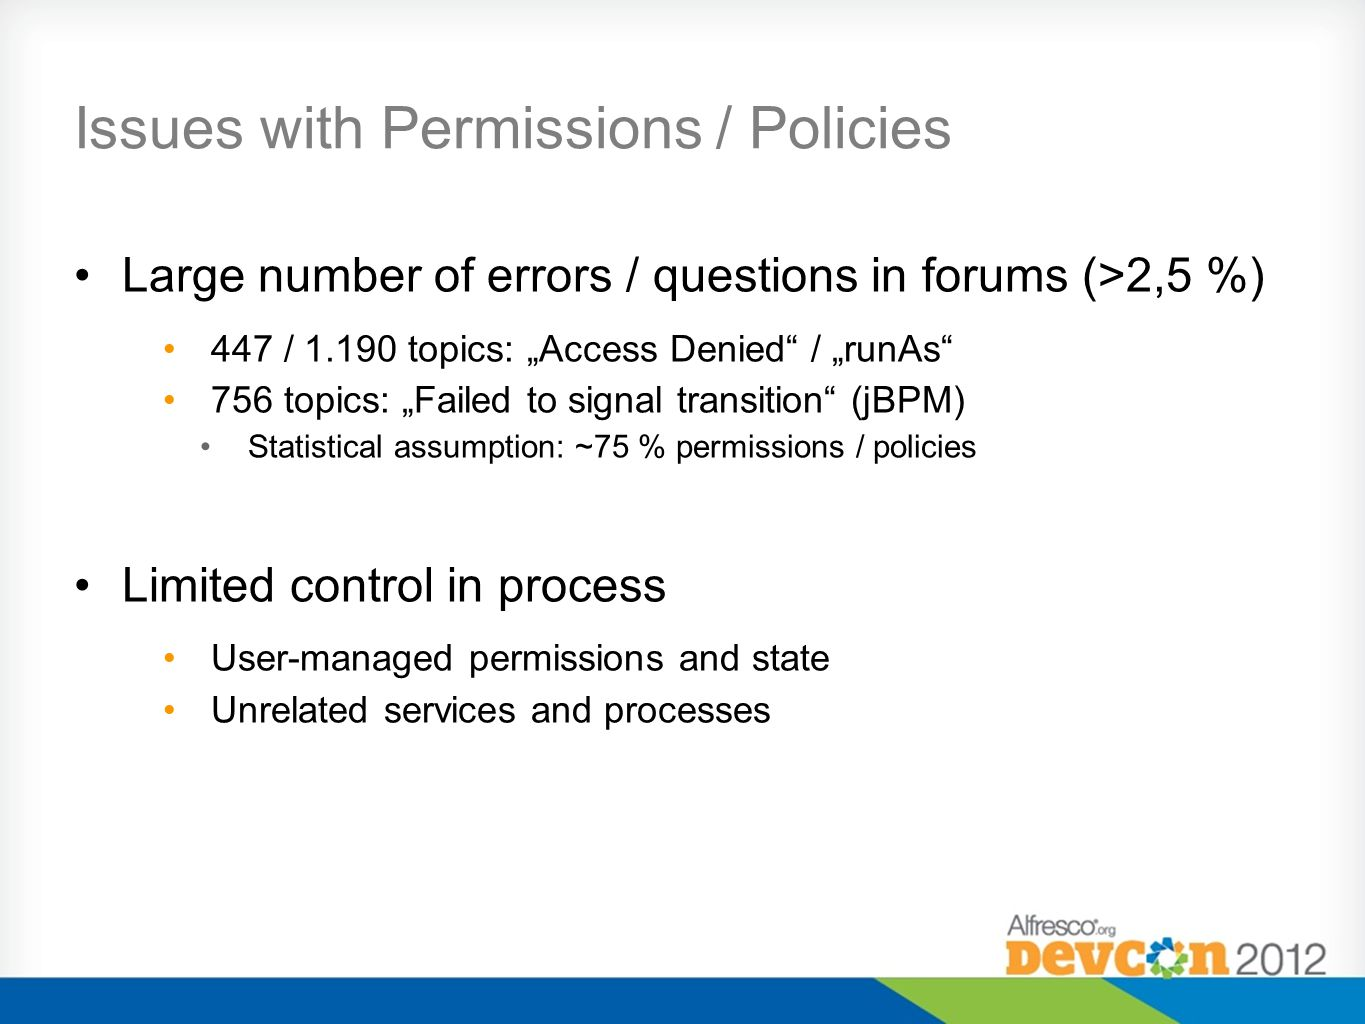 Issues with Permissions / Policies Large number of errors / questions in forums (>2,5 %) 447 / 1.190 topics: Access Denied / runAs 756 topics: Failed to signal transition (jBPM) Statistical assumption: ~75 % permissions / policies Limited control in process User-managed permissions and state Unrelated services and processes